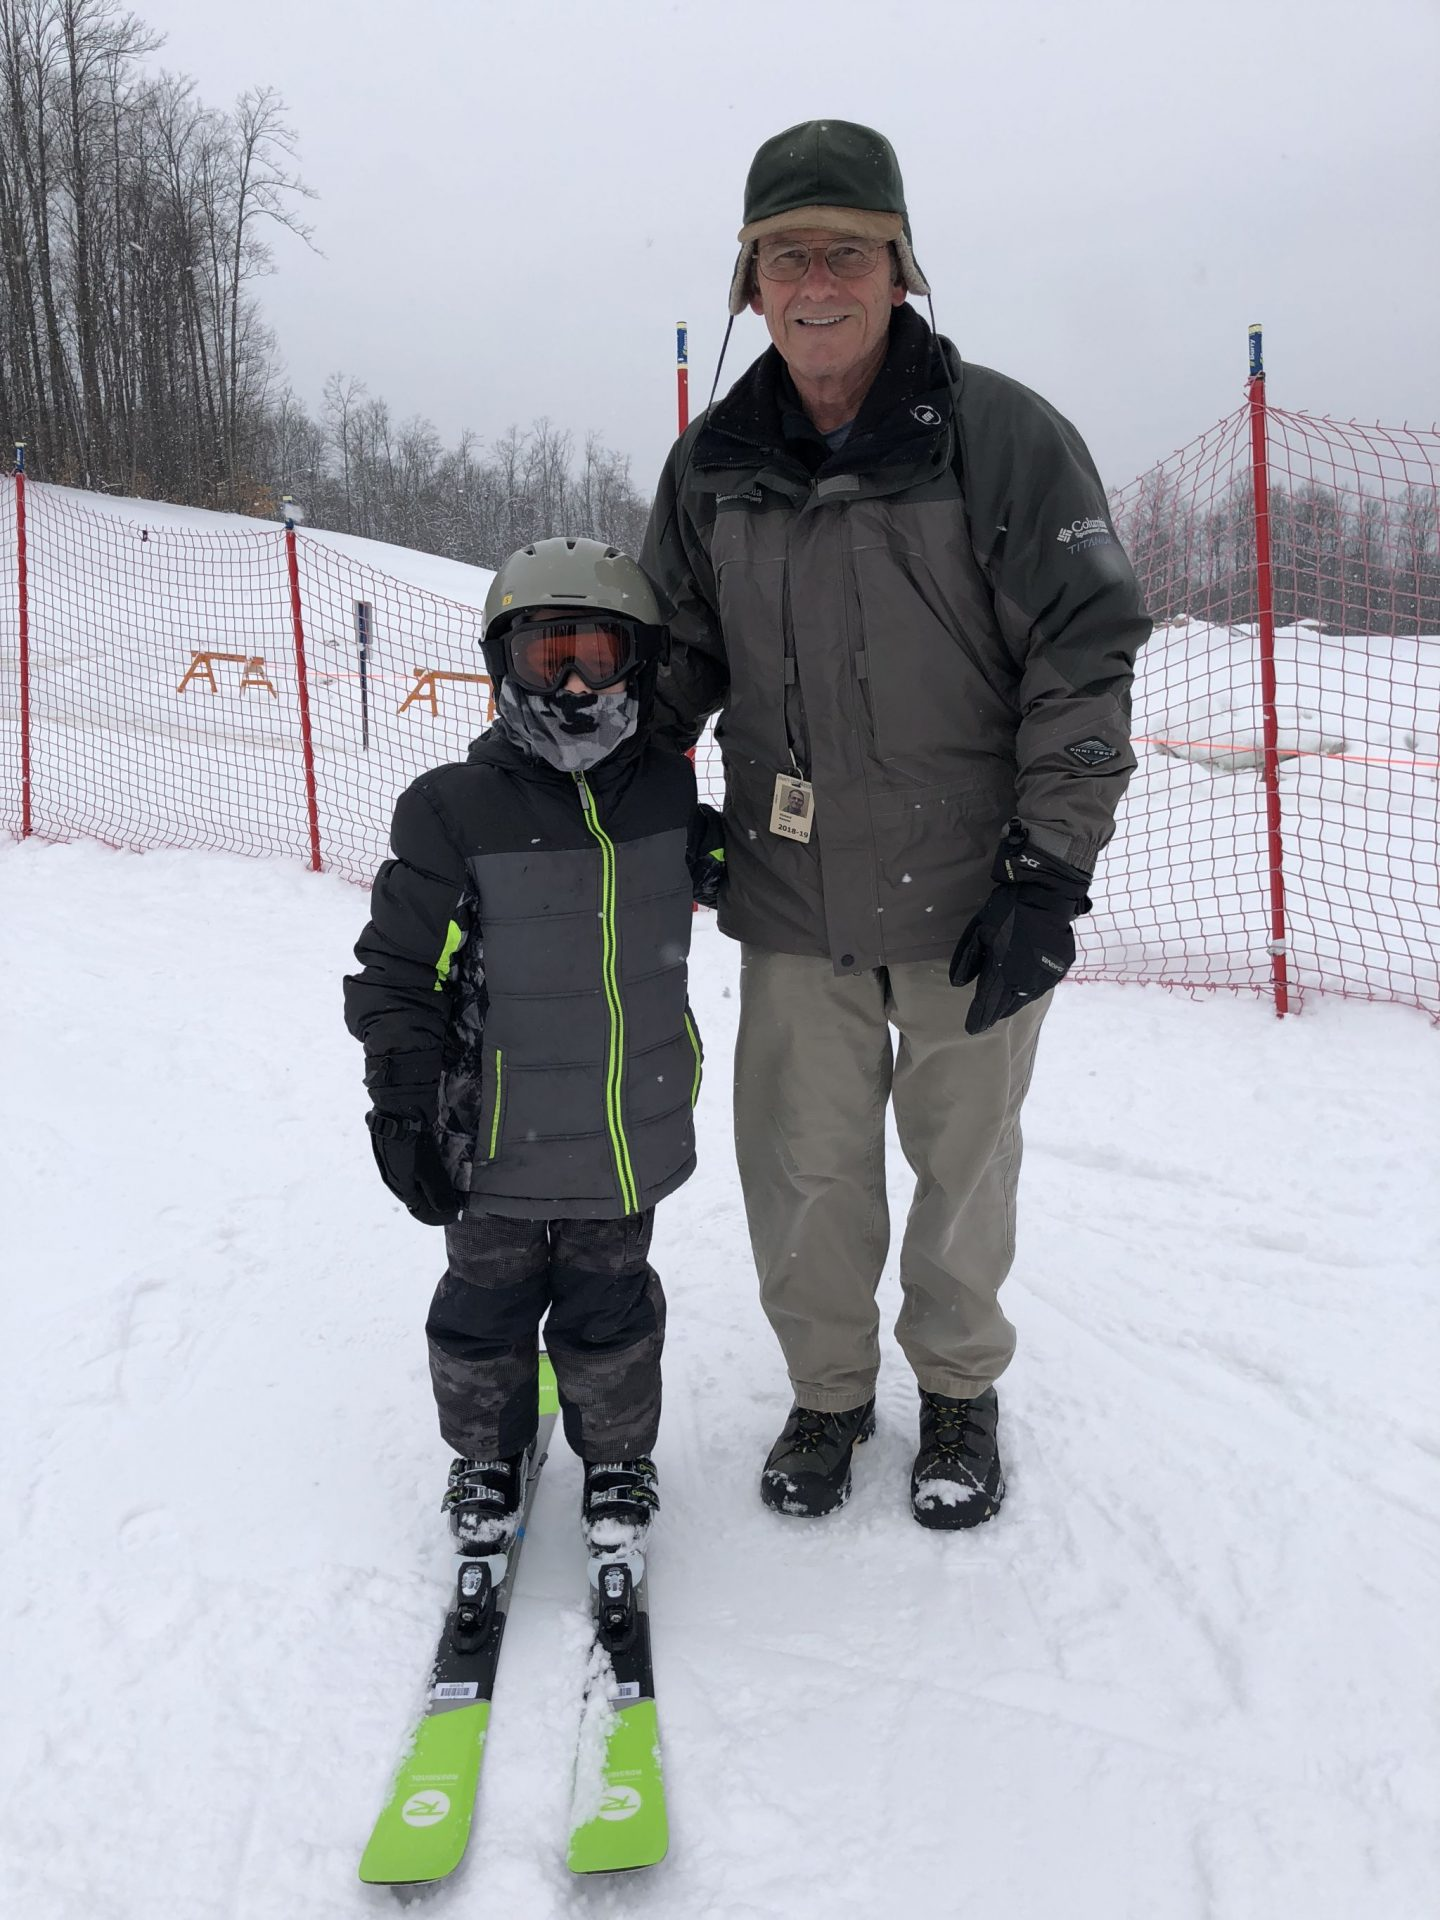 Skiing with kids in Michigan